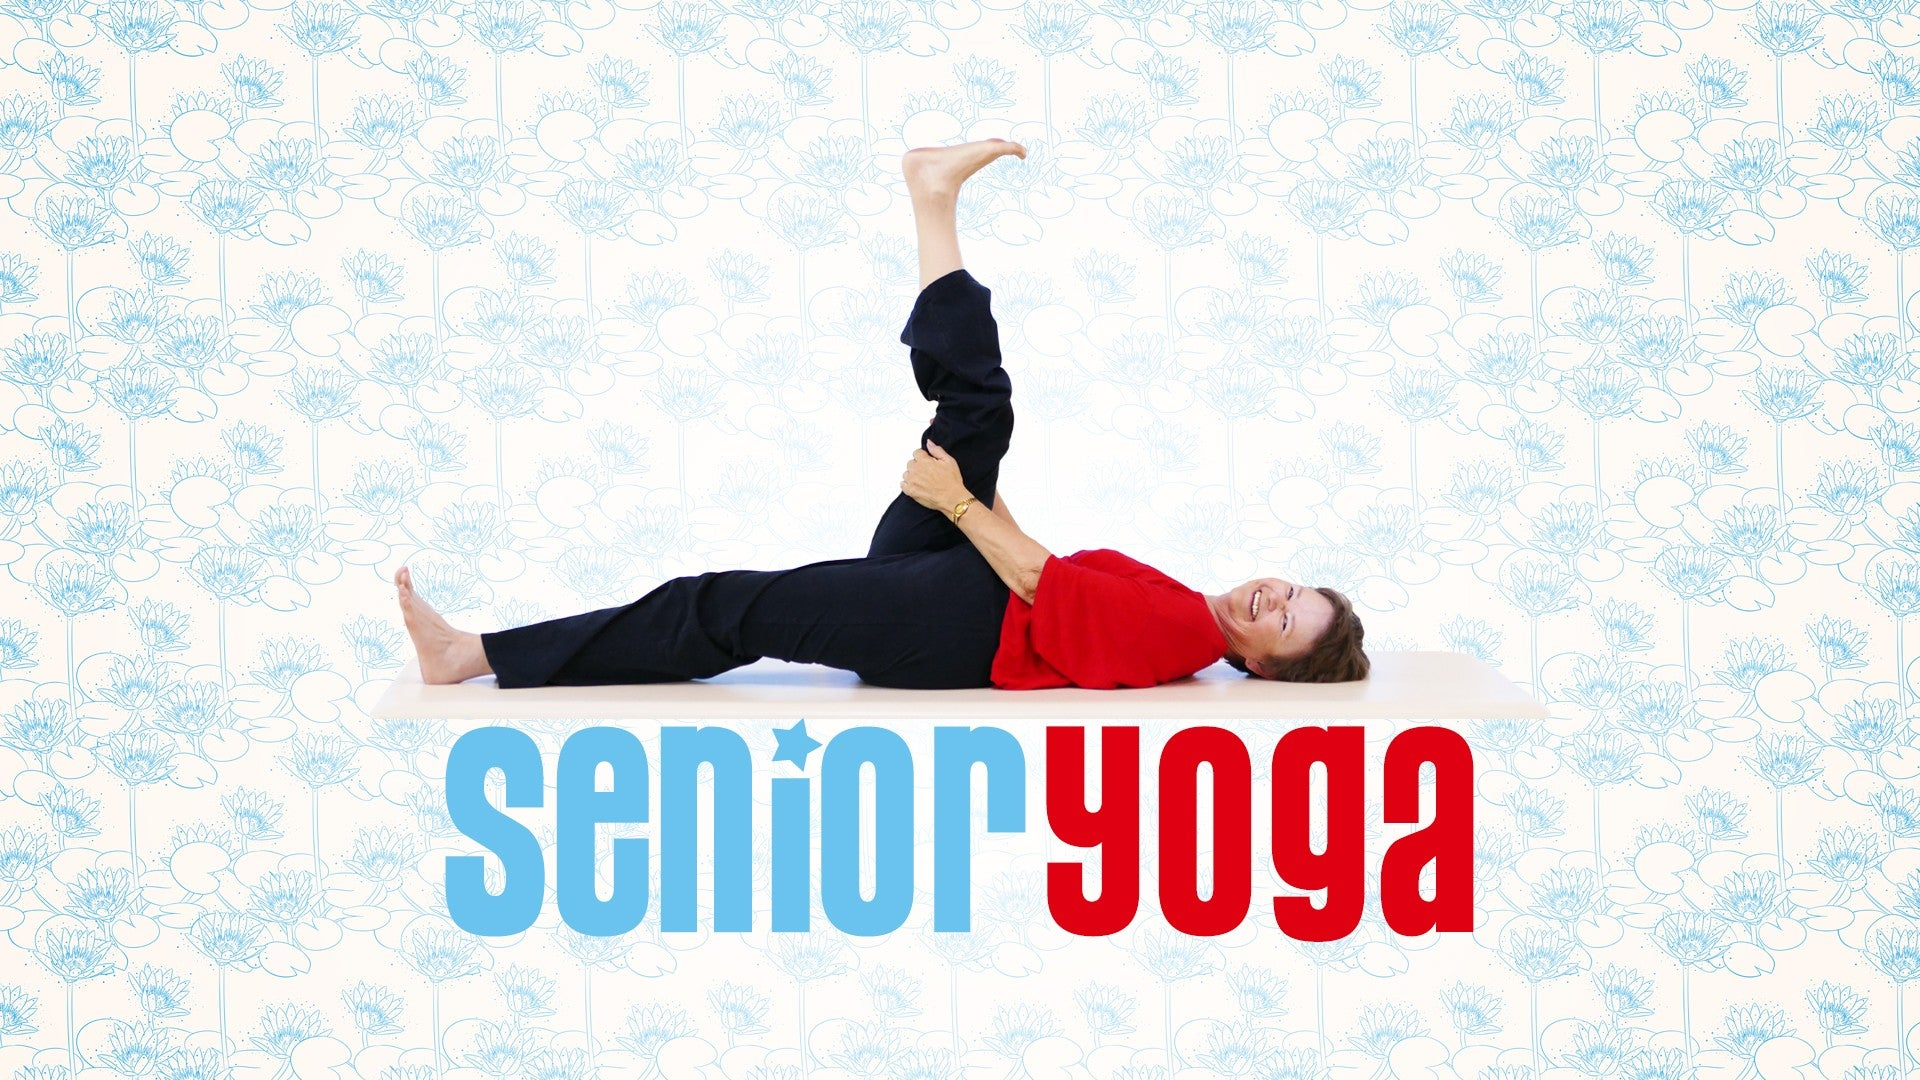 Senior Yoga Artwork